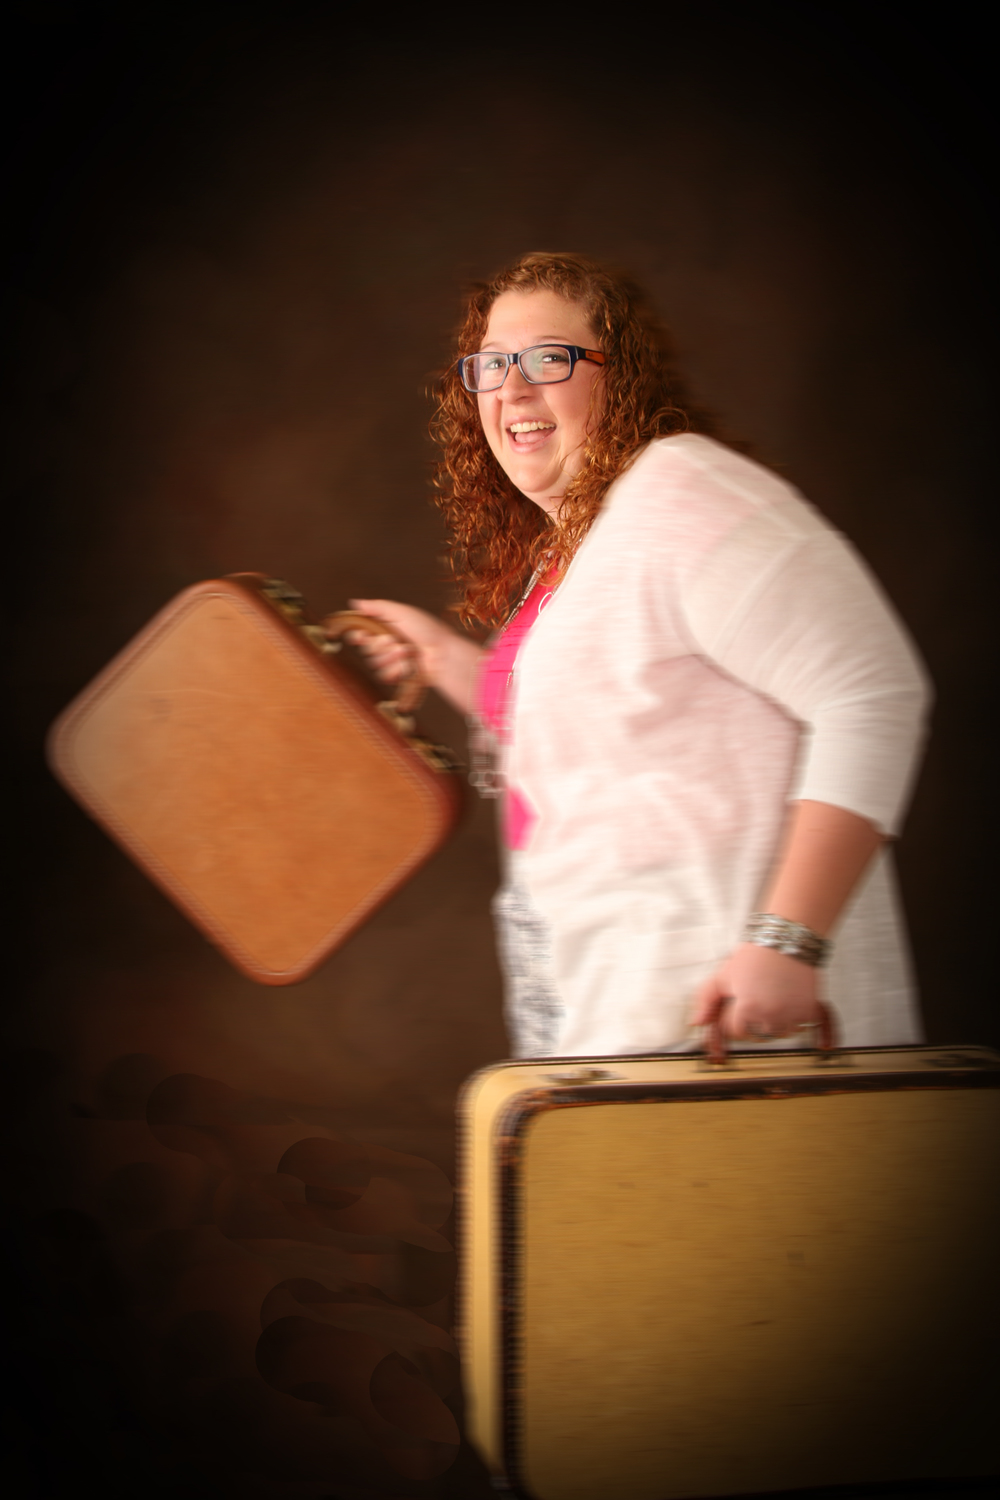 Bountiful portrait studio Creative Sister Missionary portraits